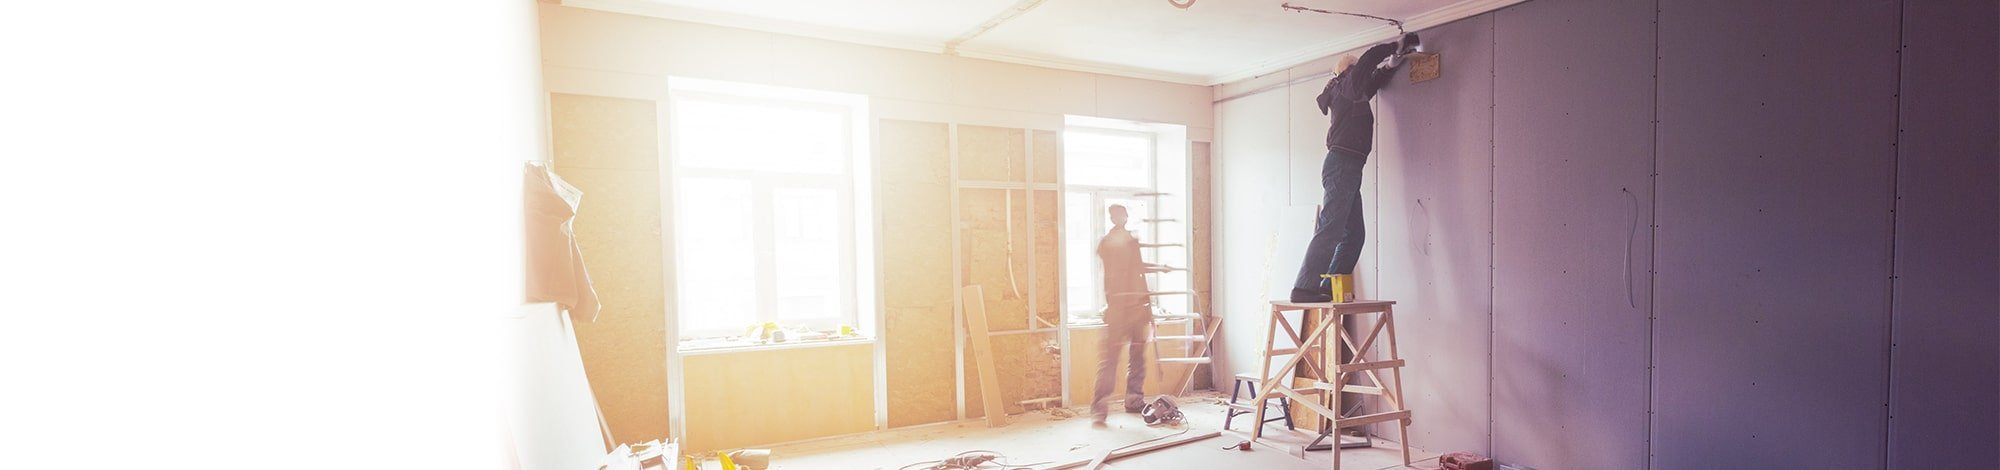 Two Tradesmen Working on a Home Renovation